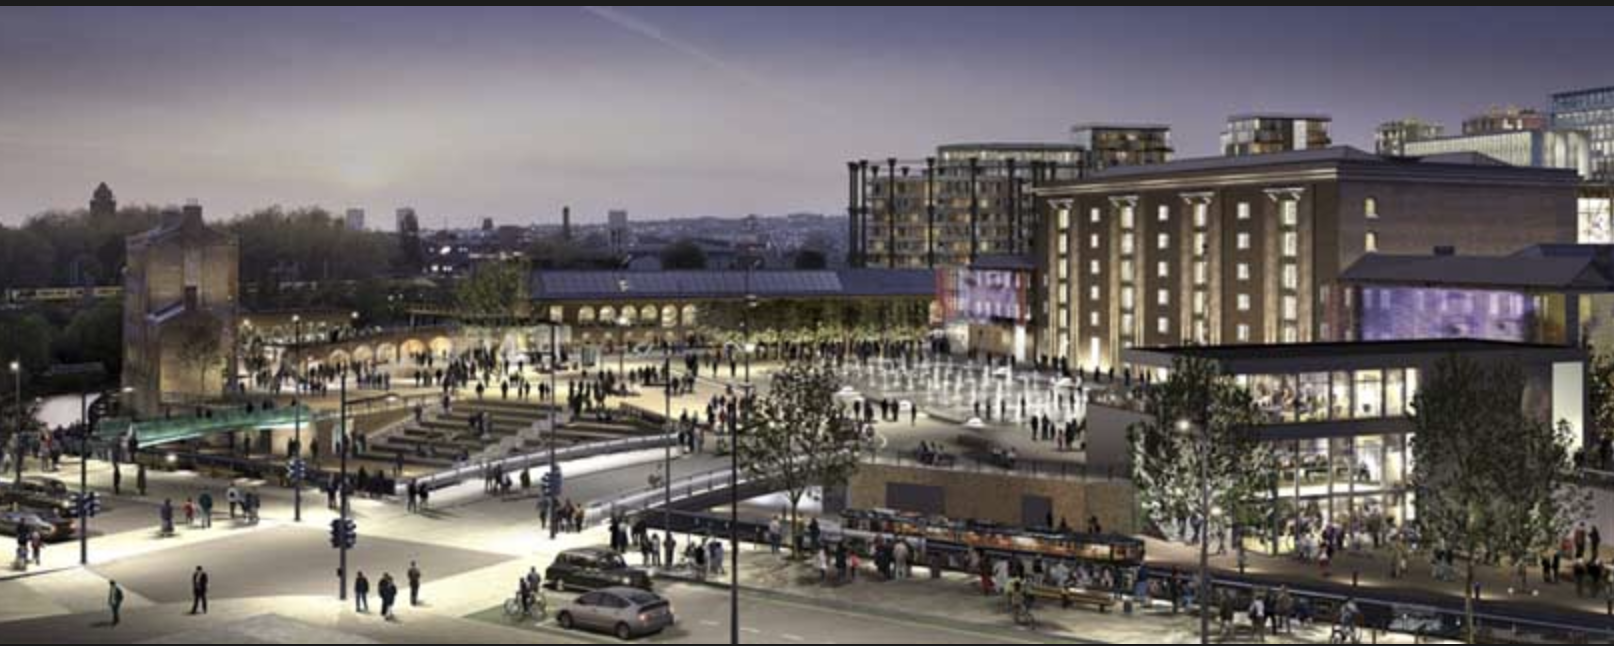 A night time view of Granary Square, part of the Kings Cross development. The circular structure in the background is one of the blocks of flats built inside an old gas tank frame